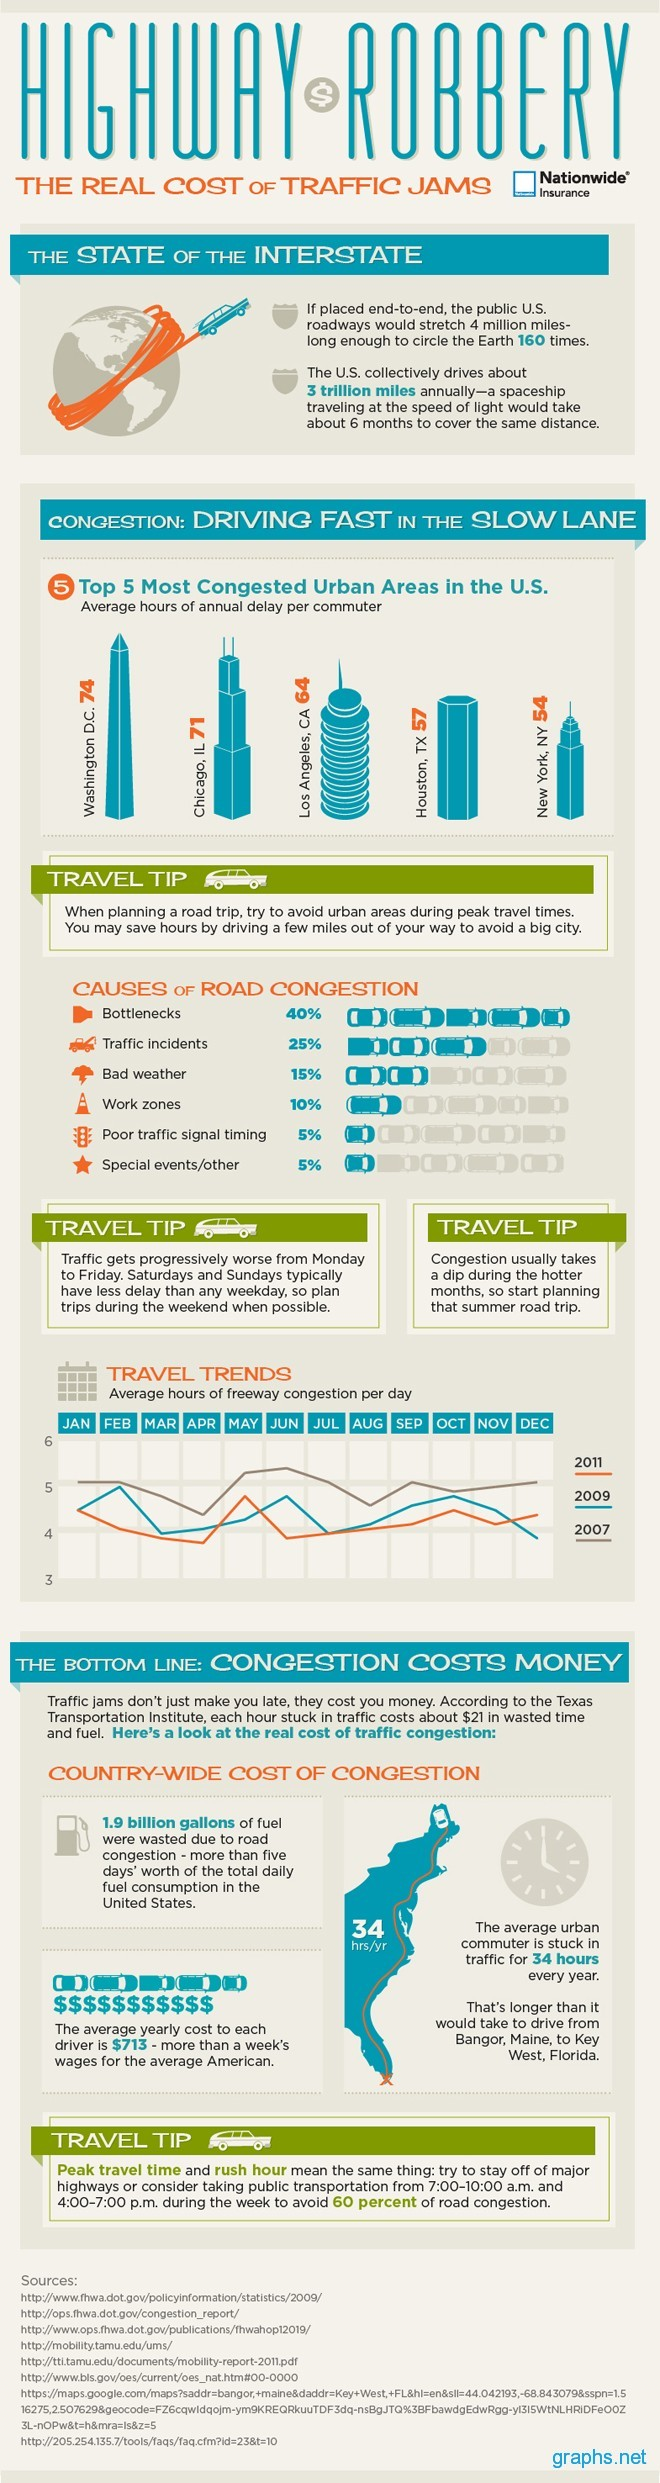 Cost of Traffic Congestion